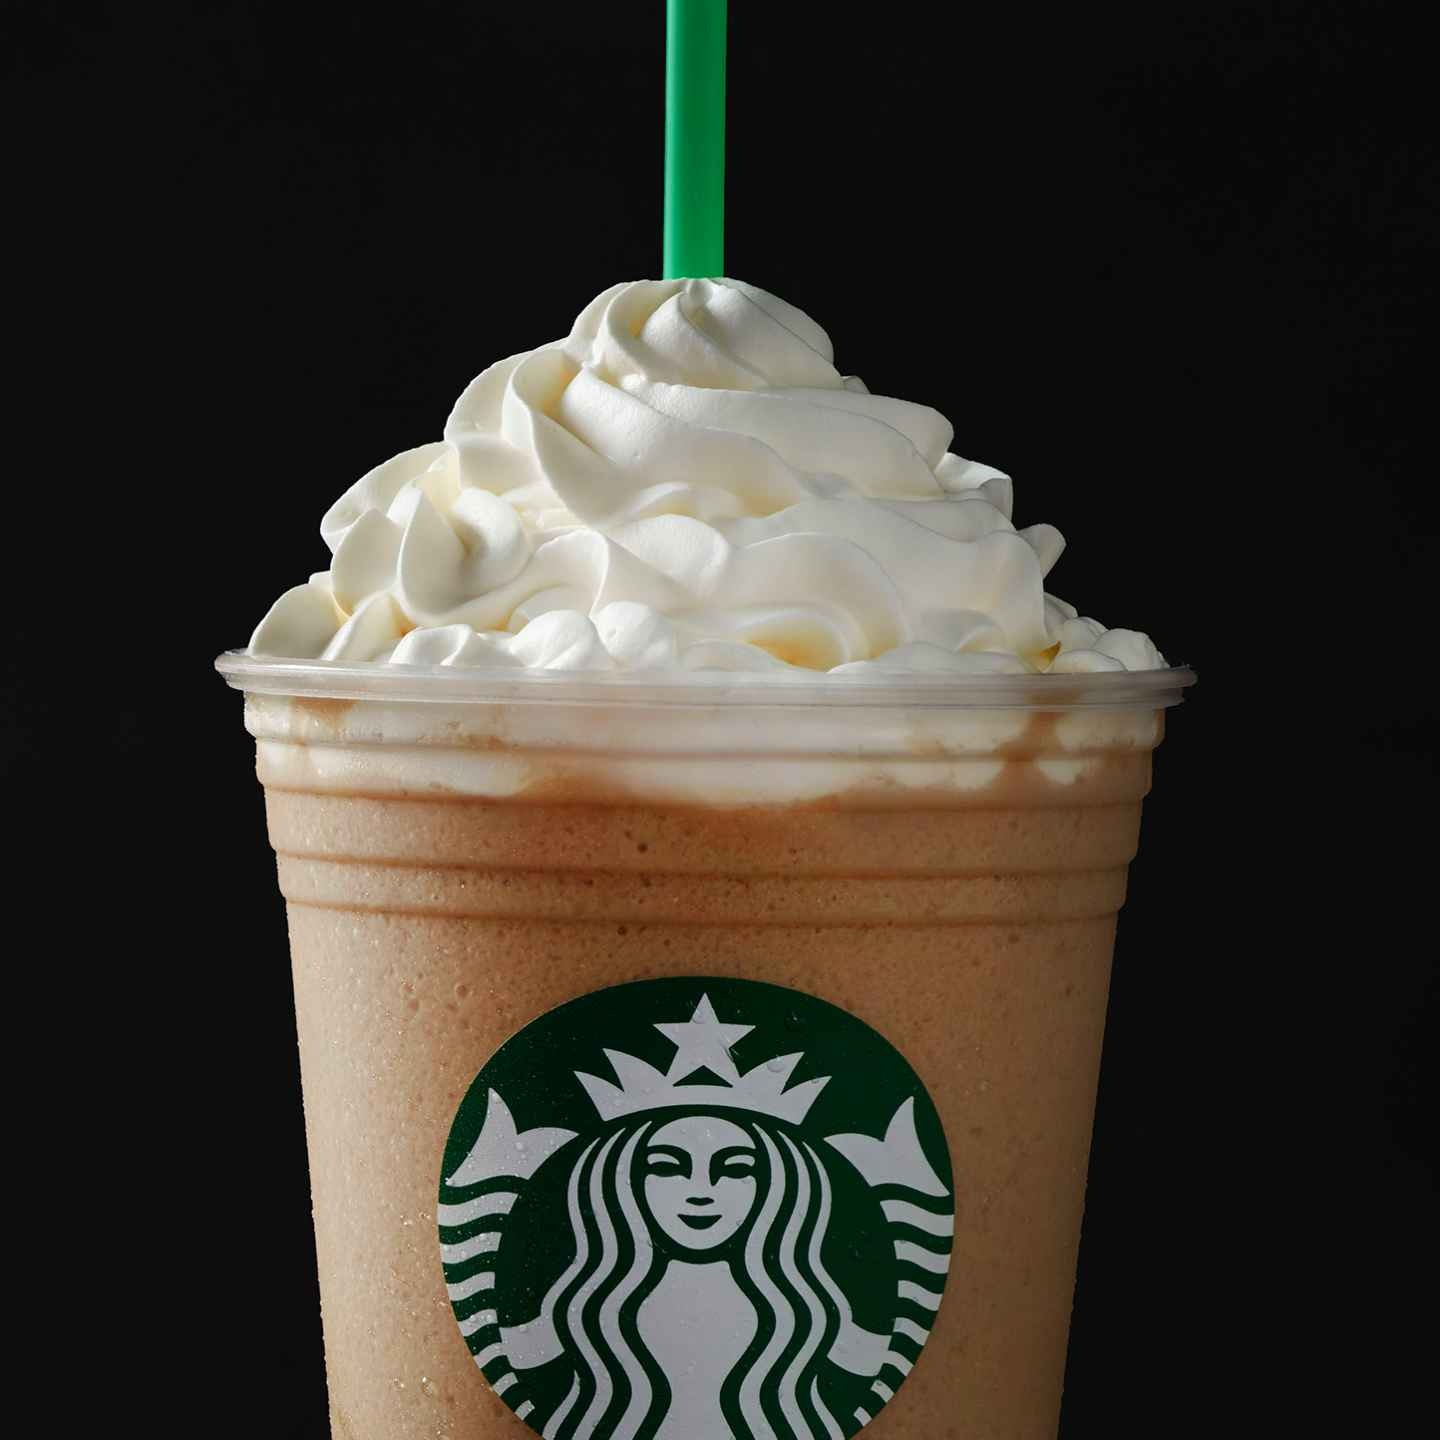 How To Order A Secret Oogie Boogie Frappuccino At Starbucks